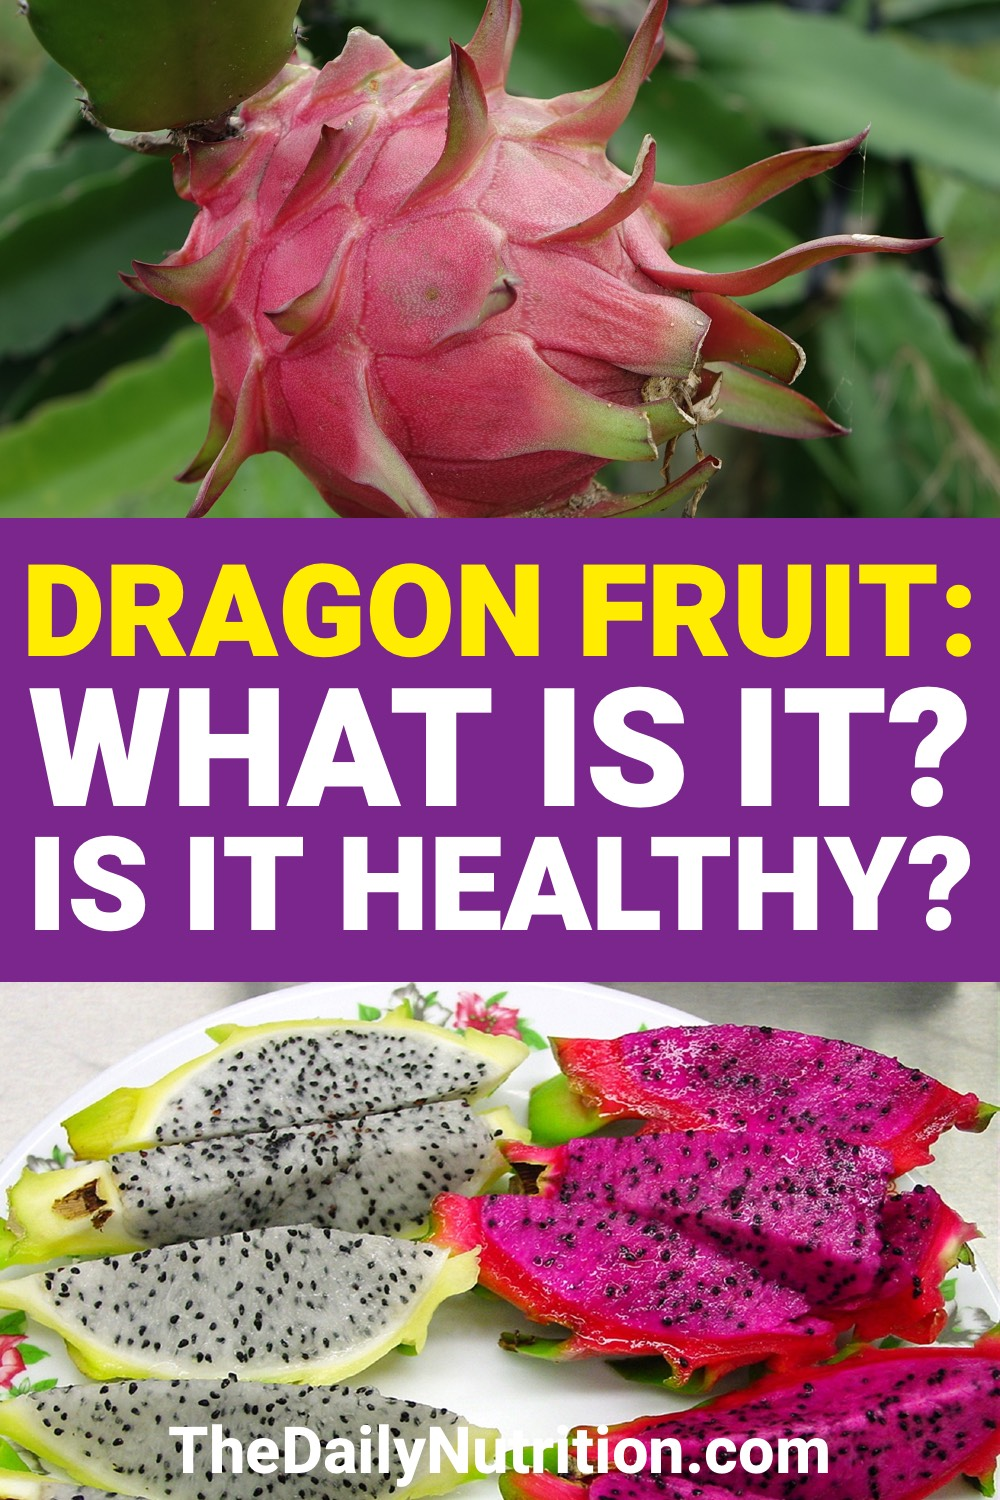 If you've never had dragon fruit, maybe you should consider having it. Dragon fruit has a lot of benefits that makes it even more unique than it looks.